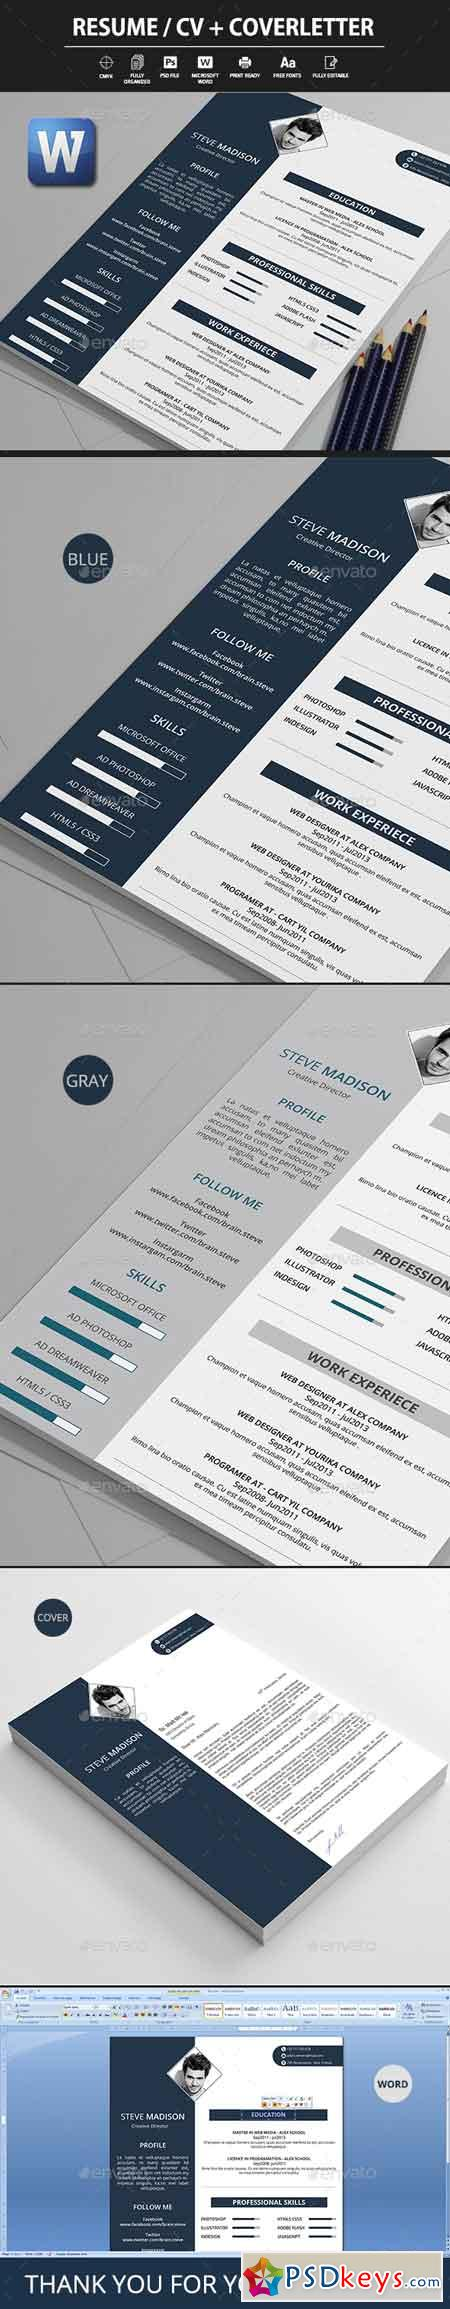 zippyshare resume – Restaurant Door Hanger Template